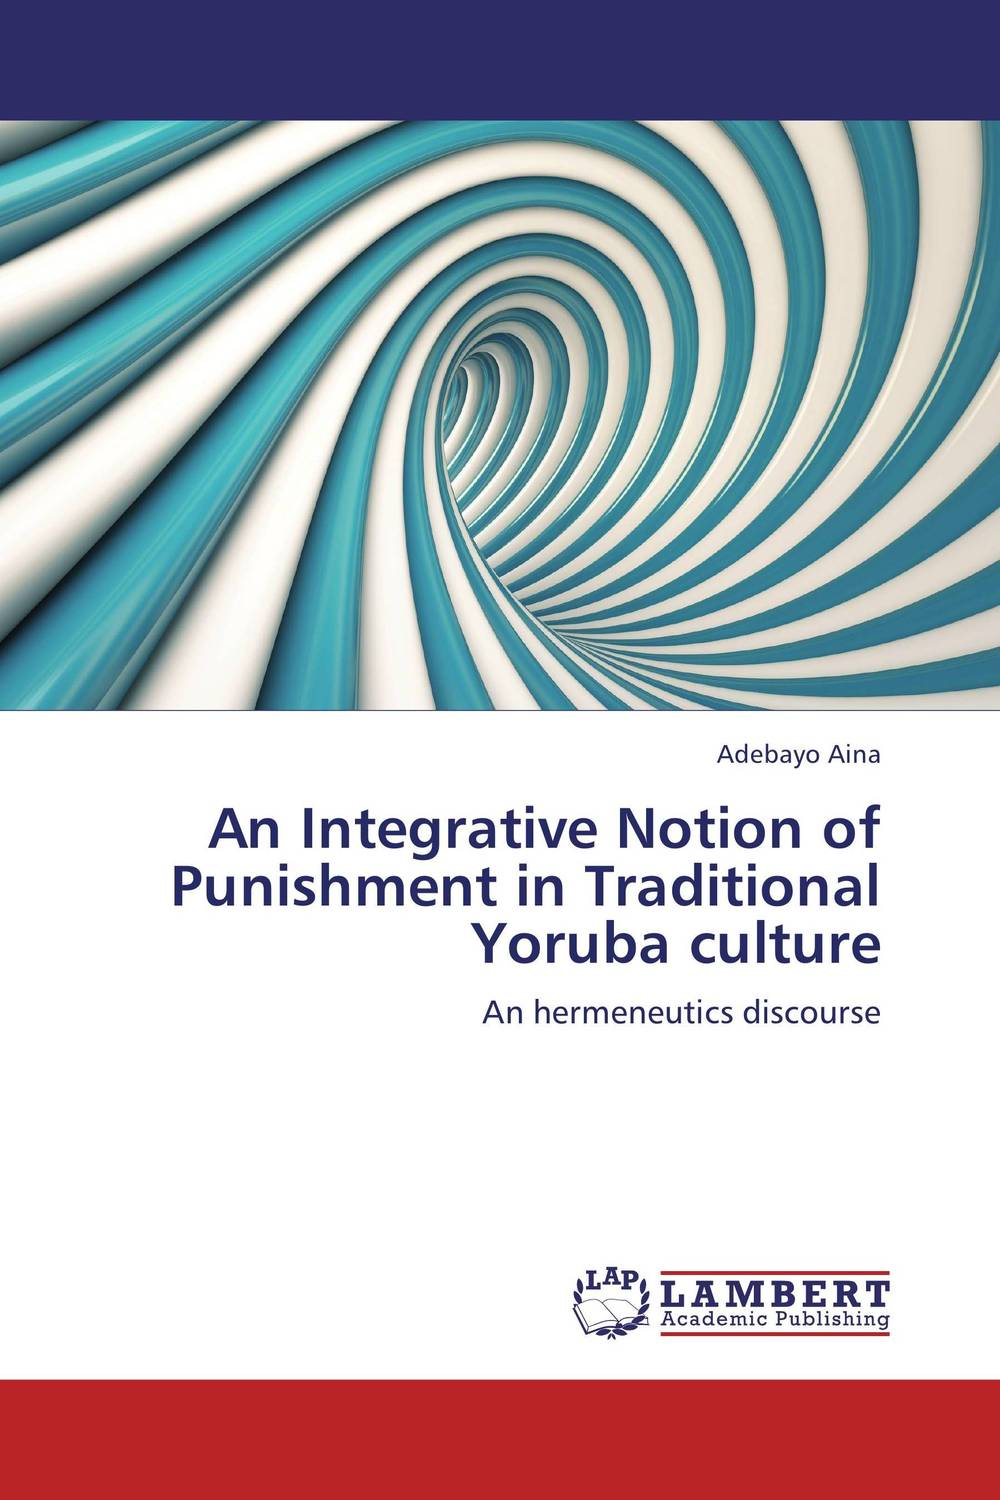 An Integrative Notion of Punishment in Traditional Yoruba culture therapeutic practices in yoruba traditional religions